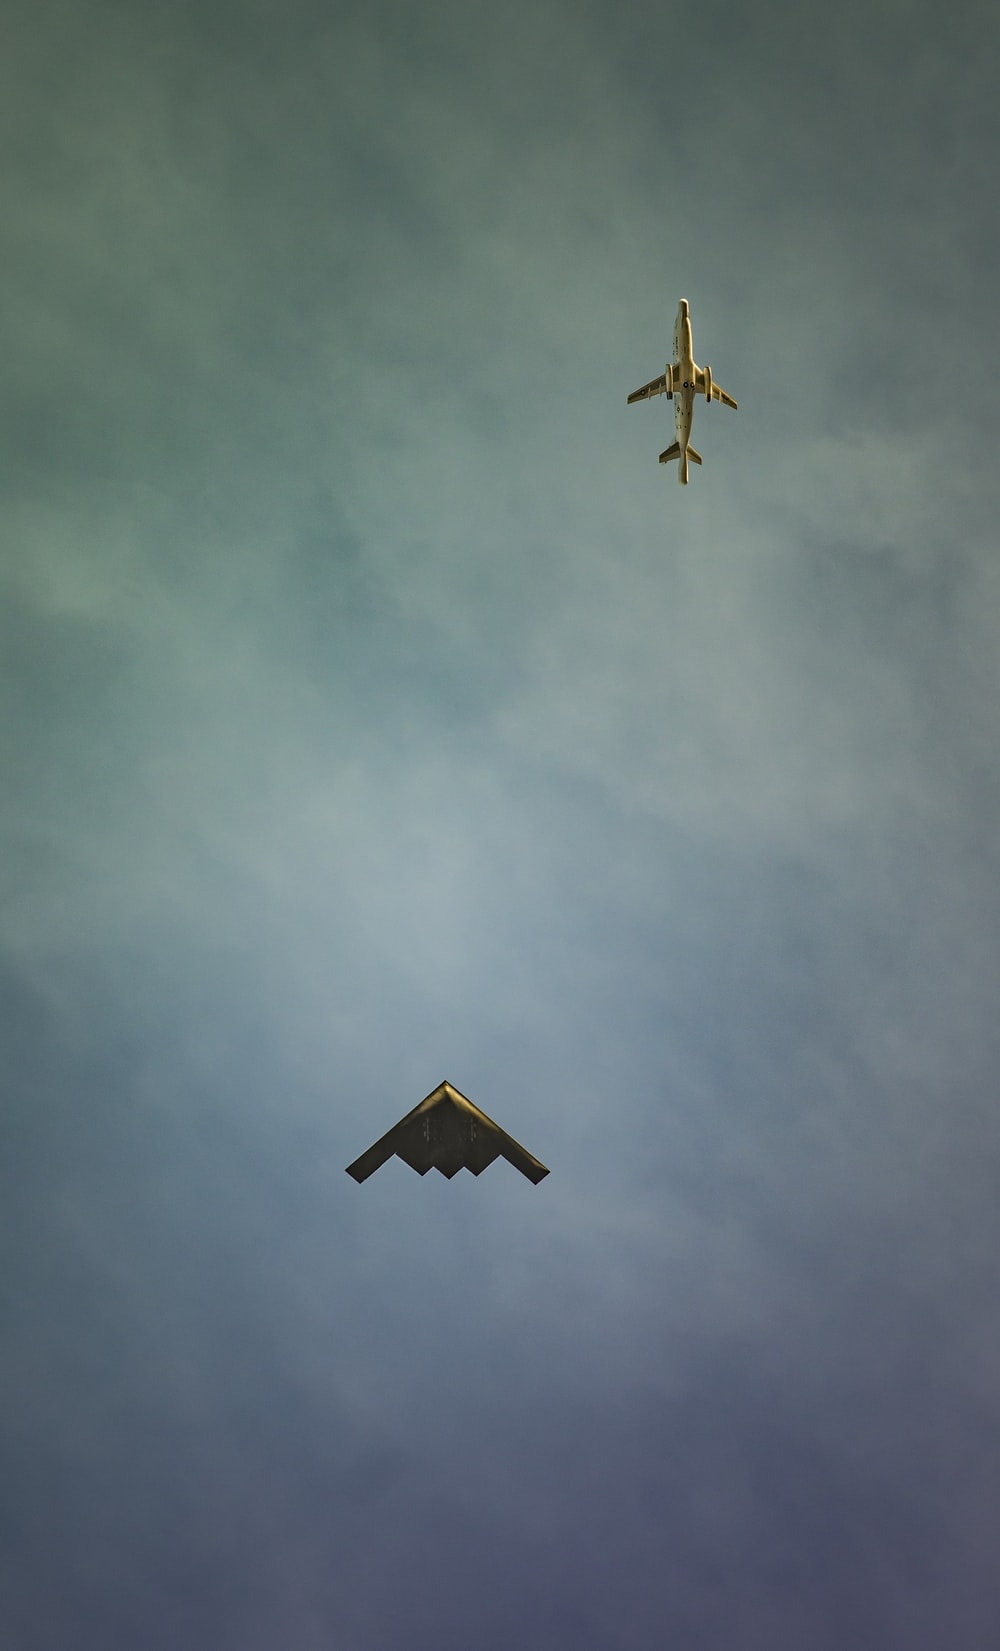 two fighter aircraft on air